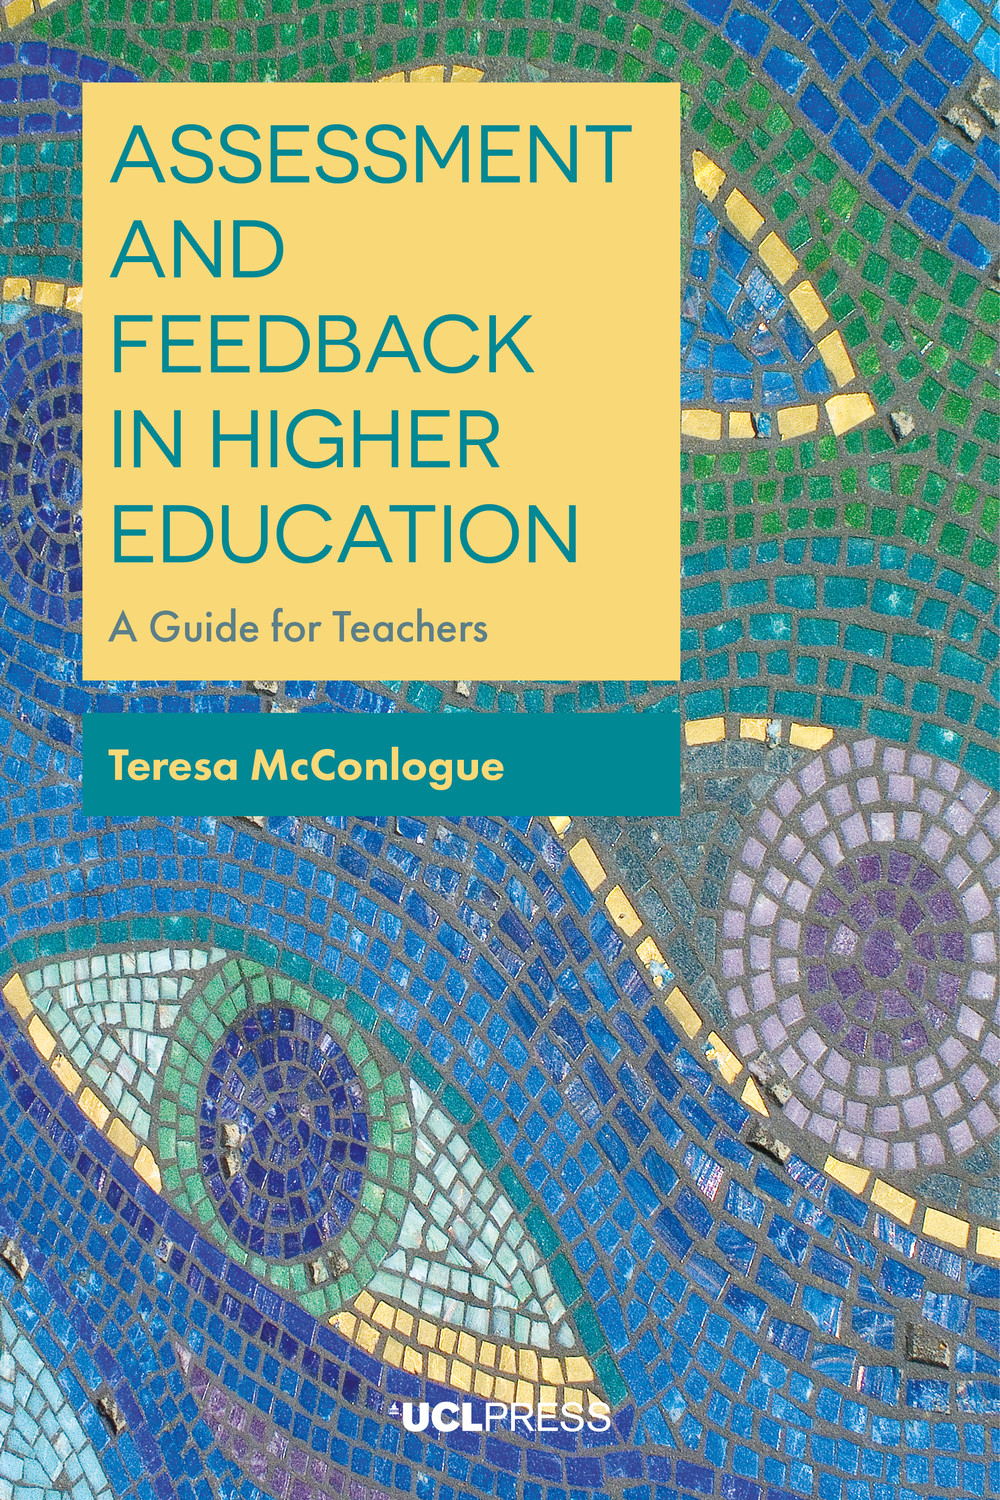 Assessment and Feedback in Higher Education